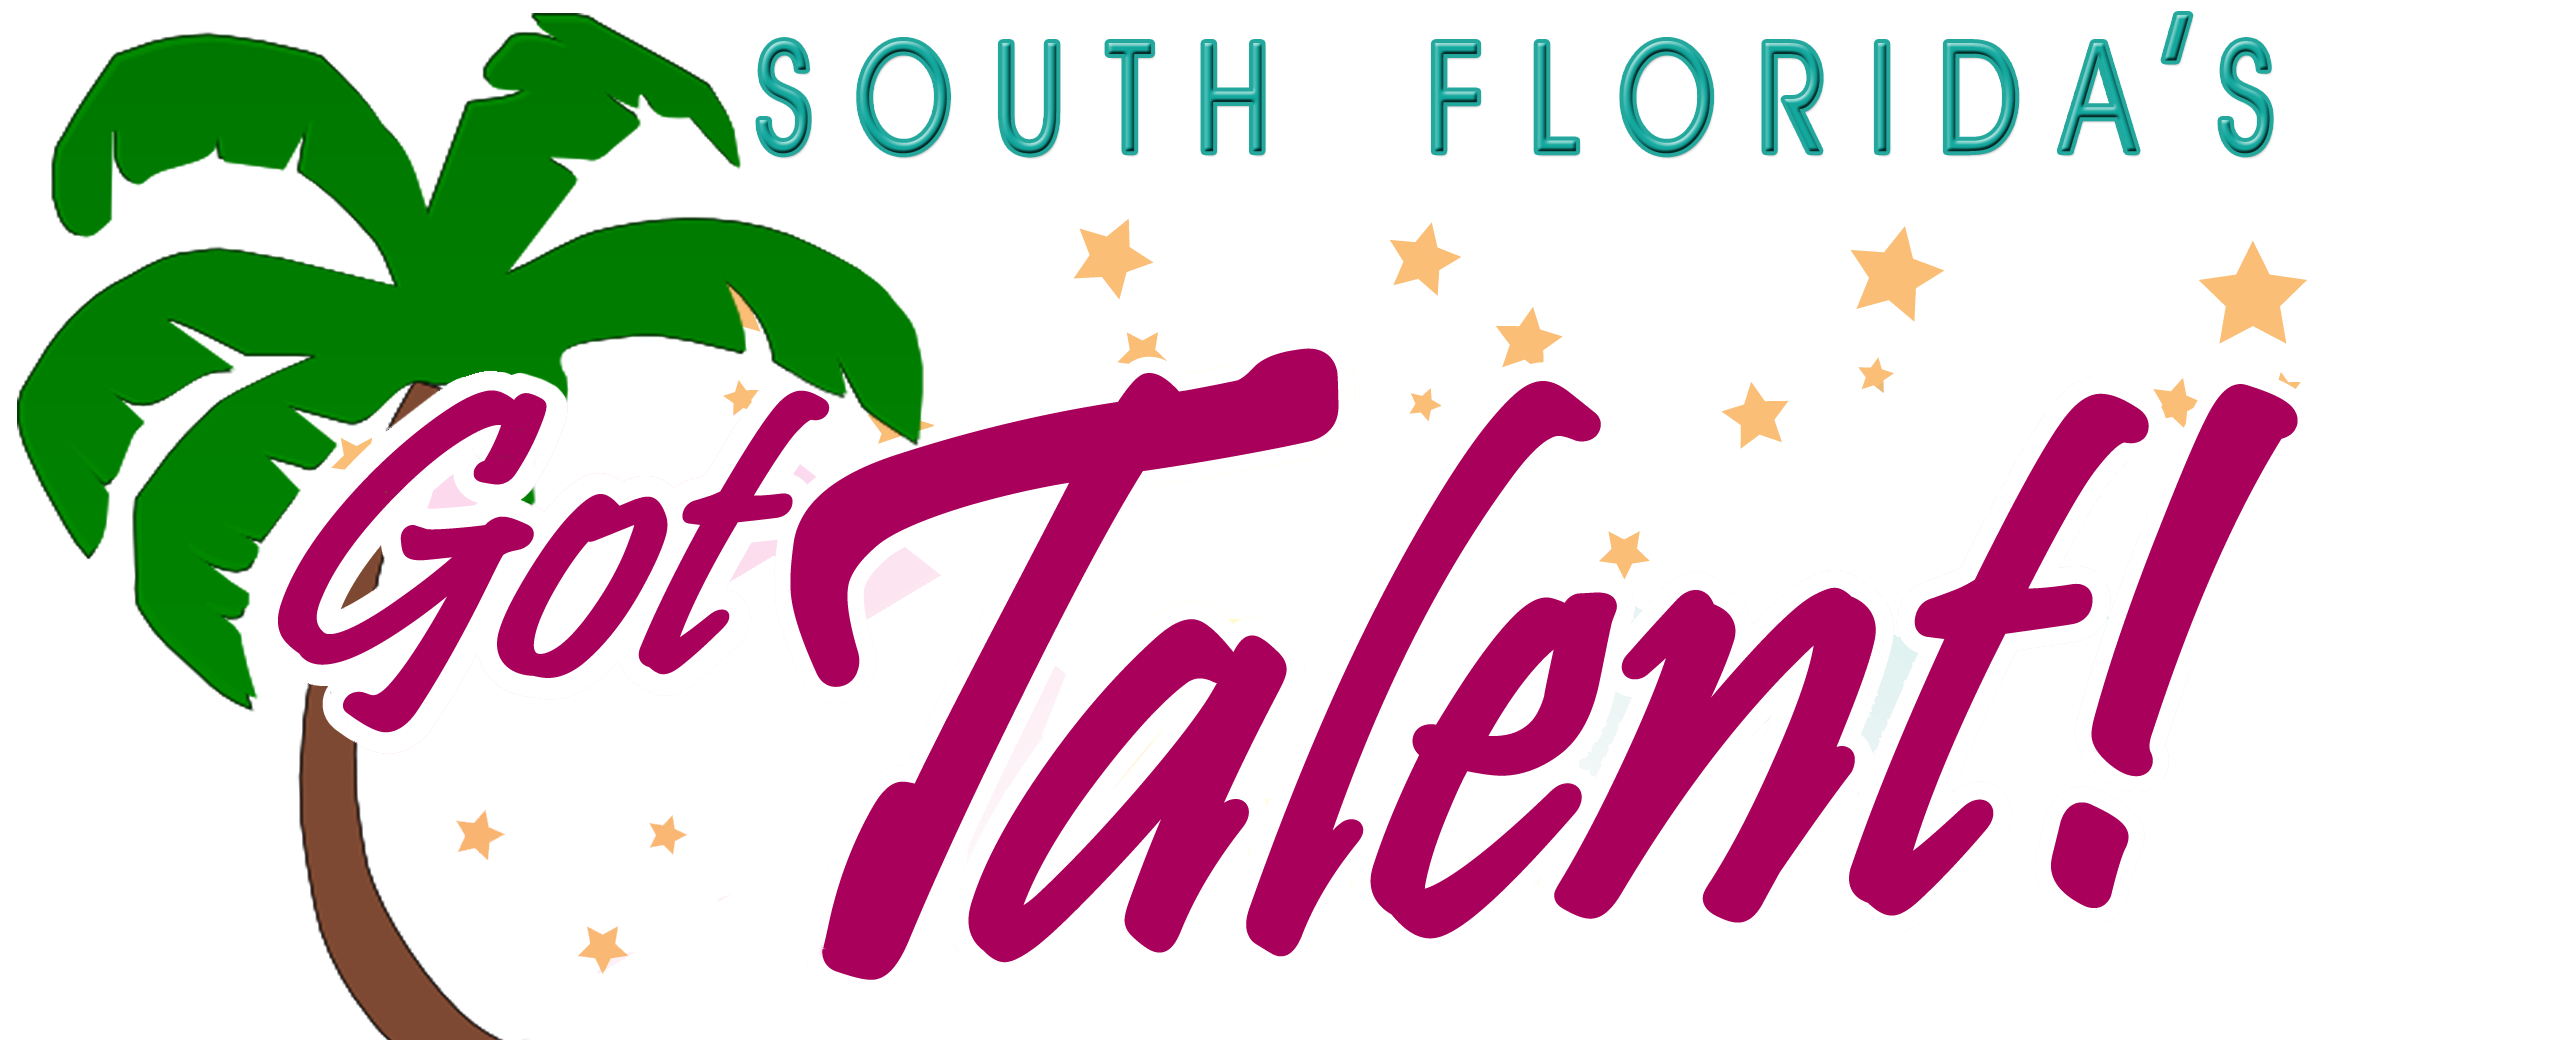 Back By Popular Demand….South Florida's Got Talent! An Audition & Talent Competition, Win Cash & Prizes!